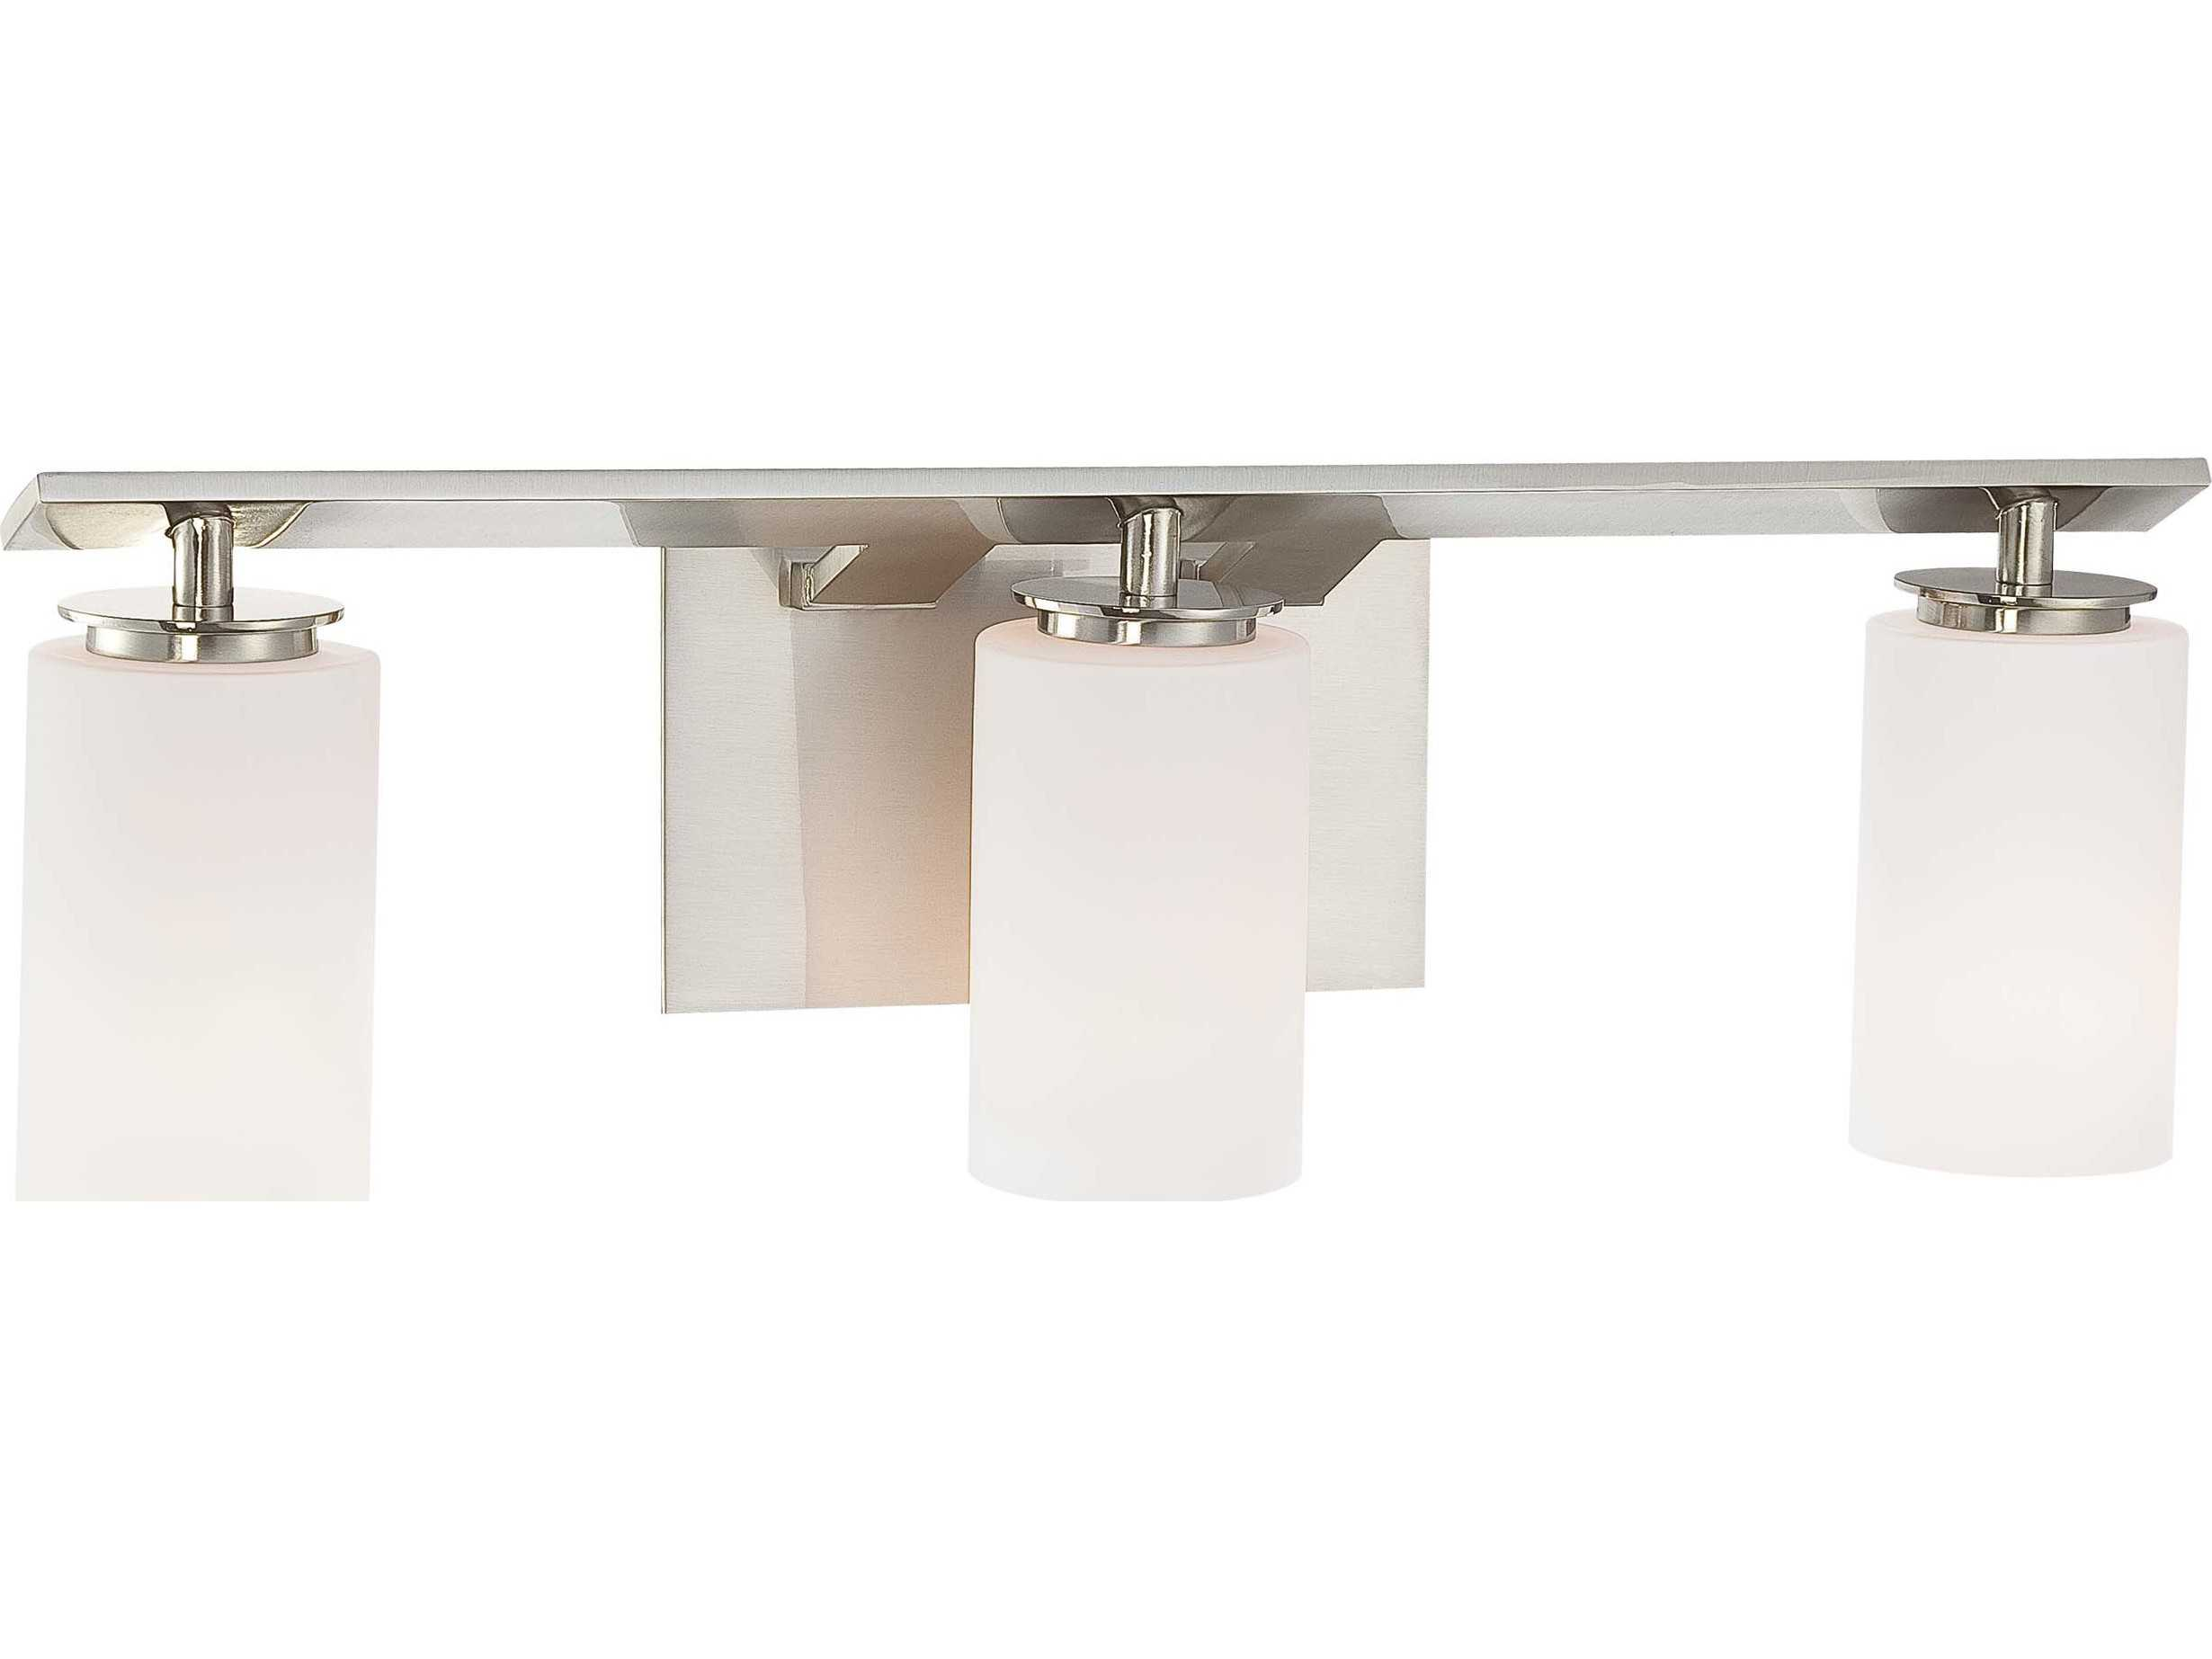 Vanity Lights Cyber Monday : Minka Lavery Inoui Brushed Nickel Three-Light Vanity Light MGO655384